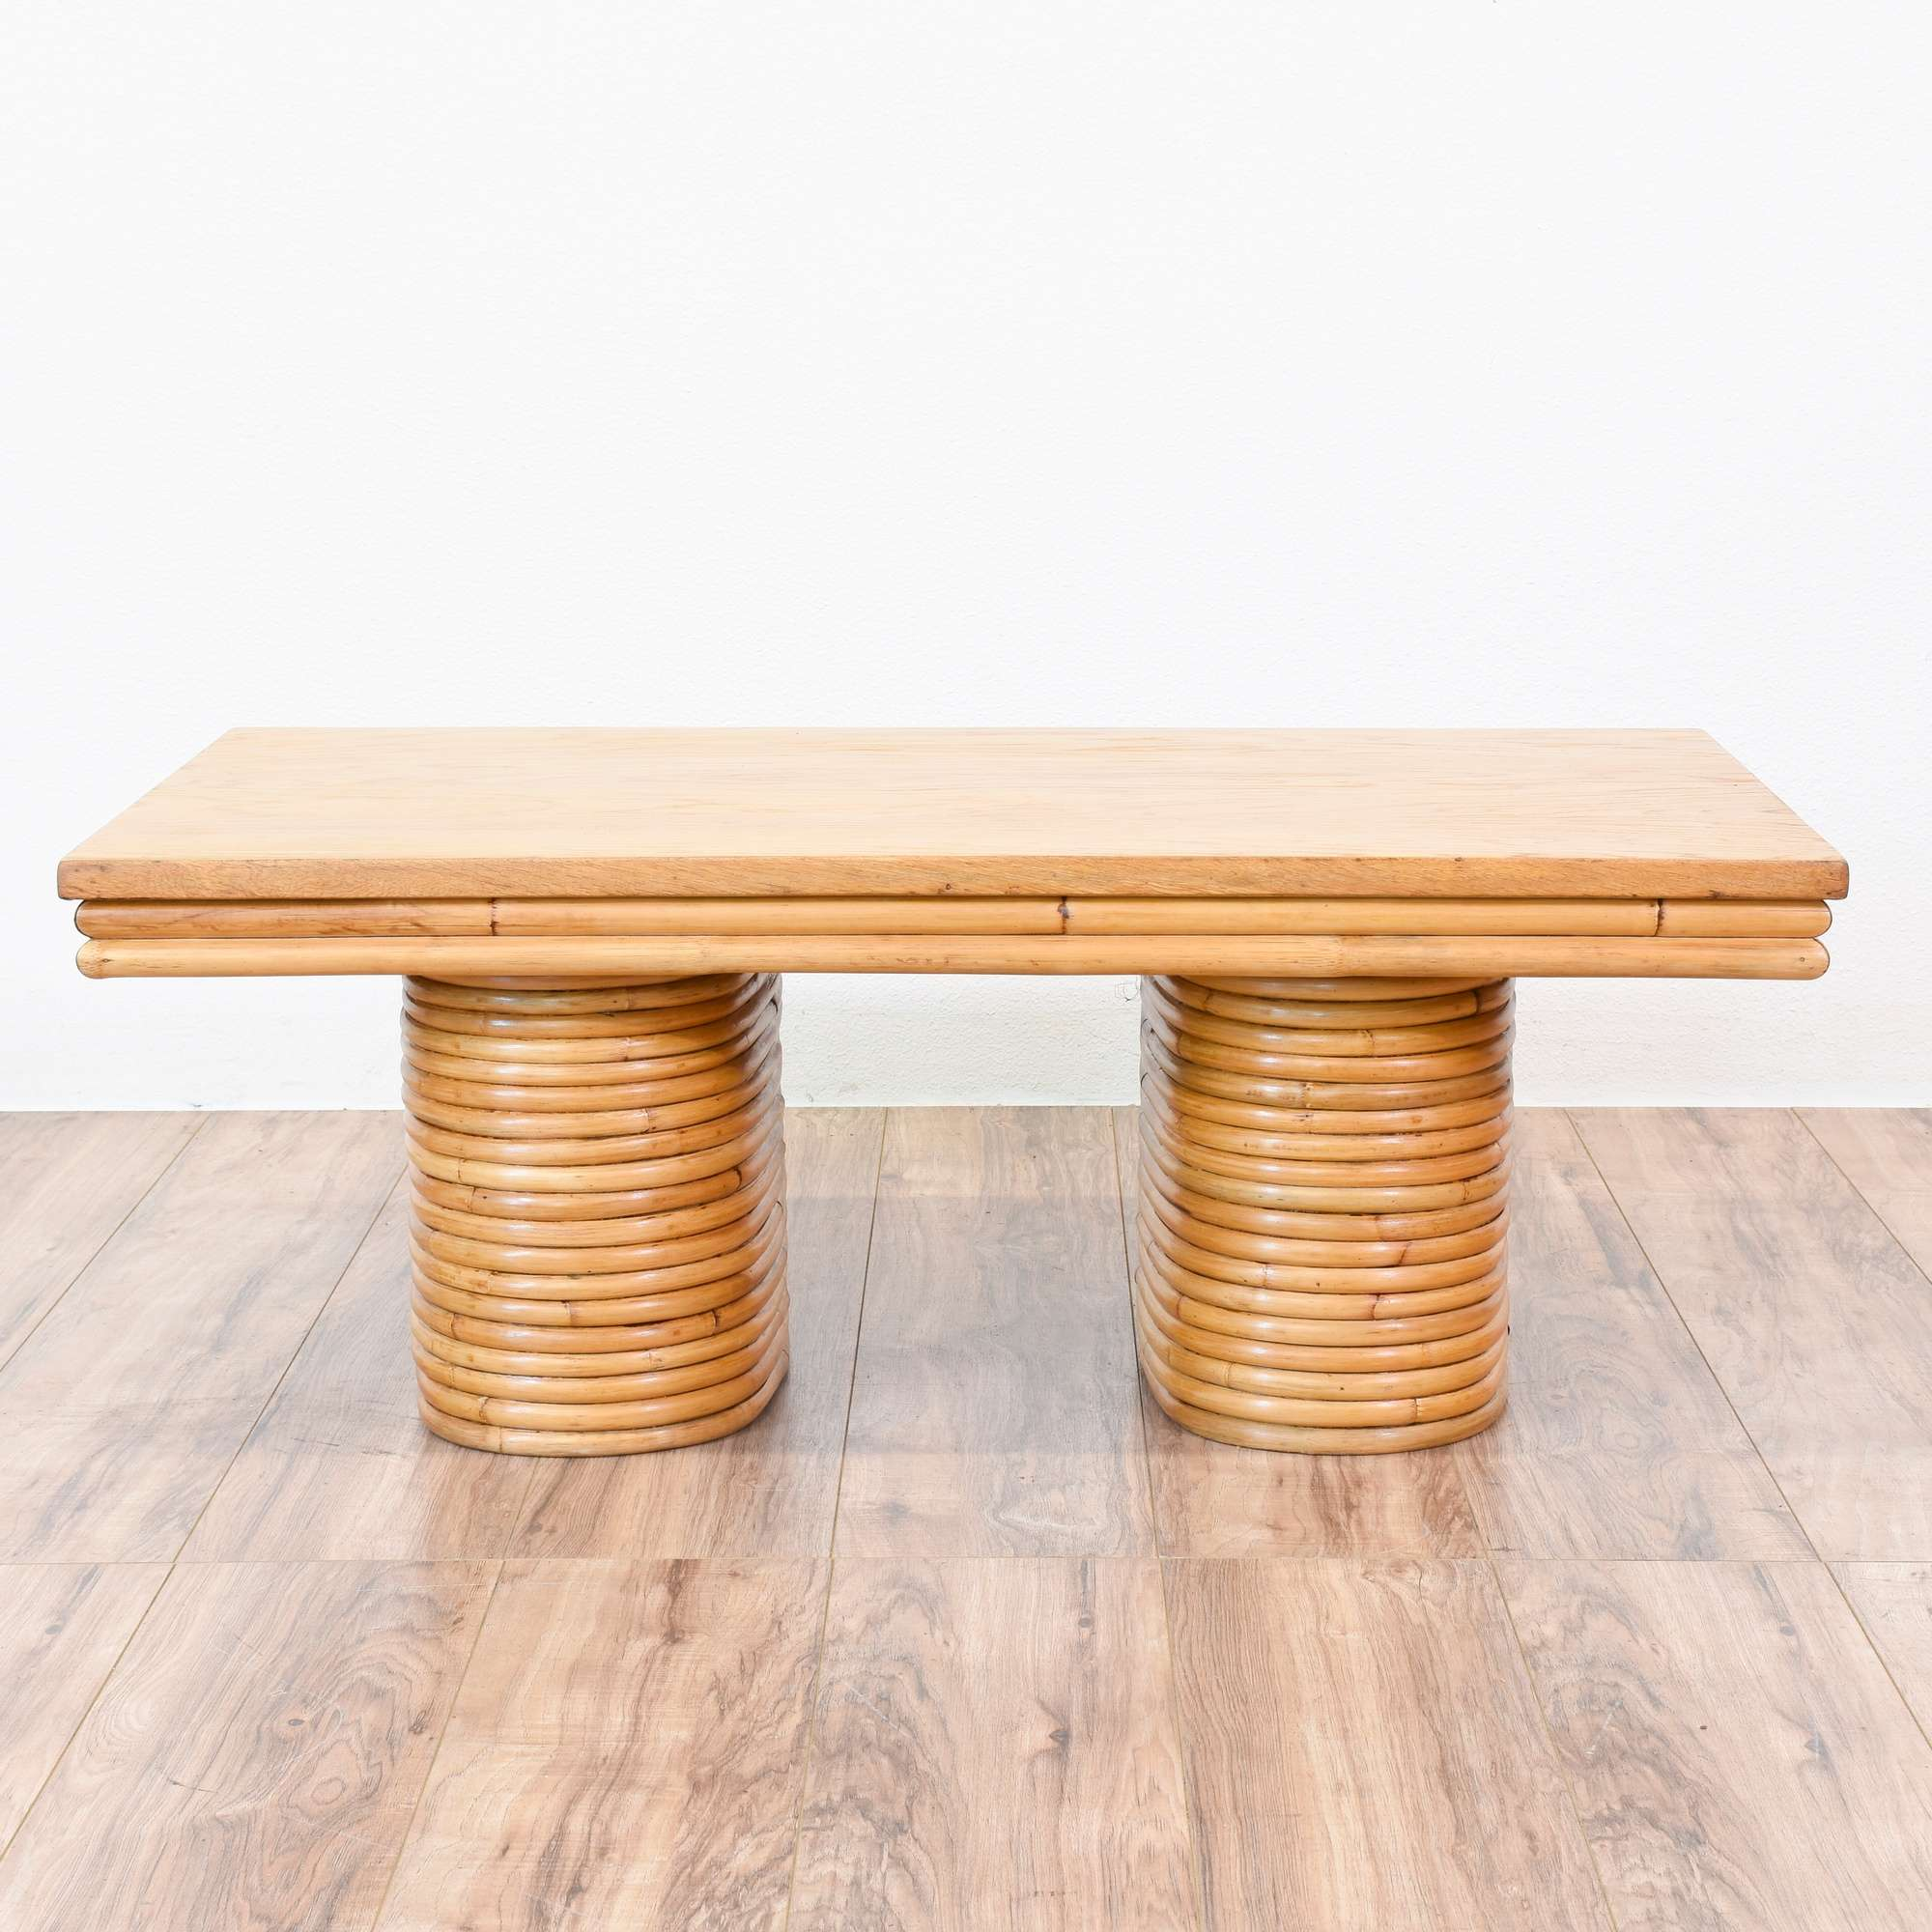 "Paul Frankl"" Style Tropical Rattan Coffee Table"